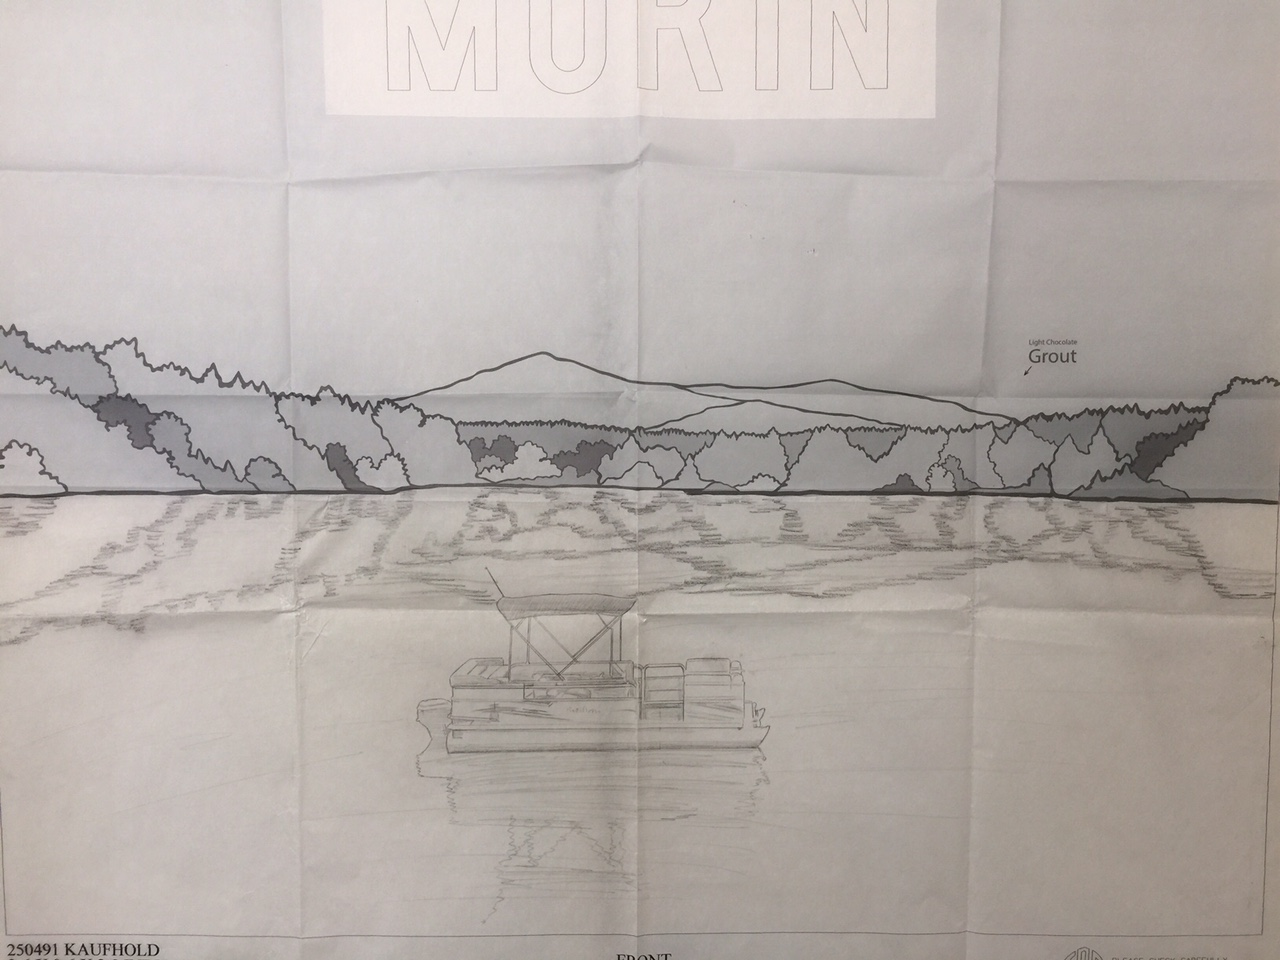 Final Draft Full Size Drawing of Glass Art and Hand Etching Design together